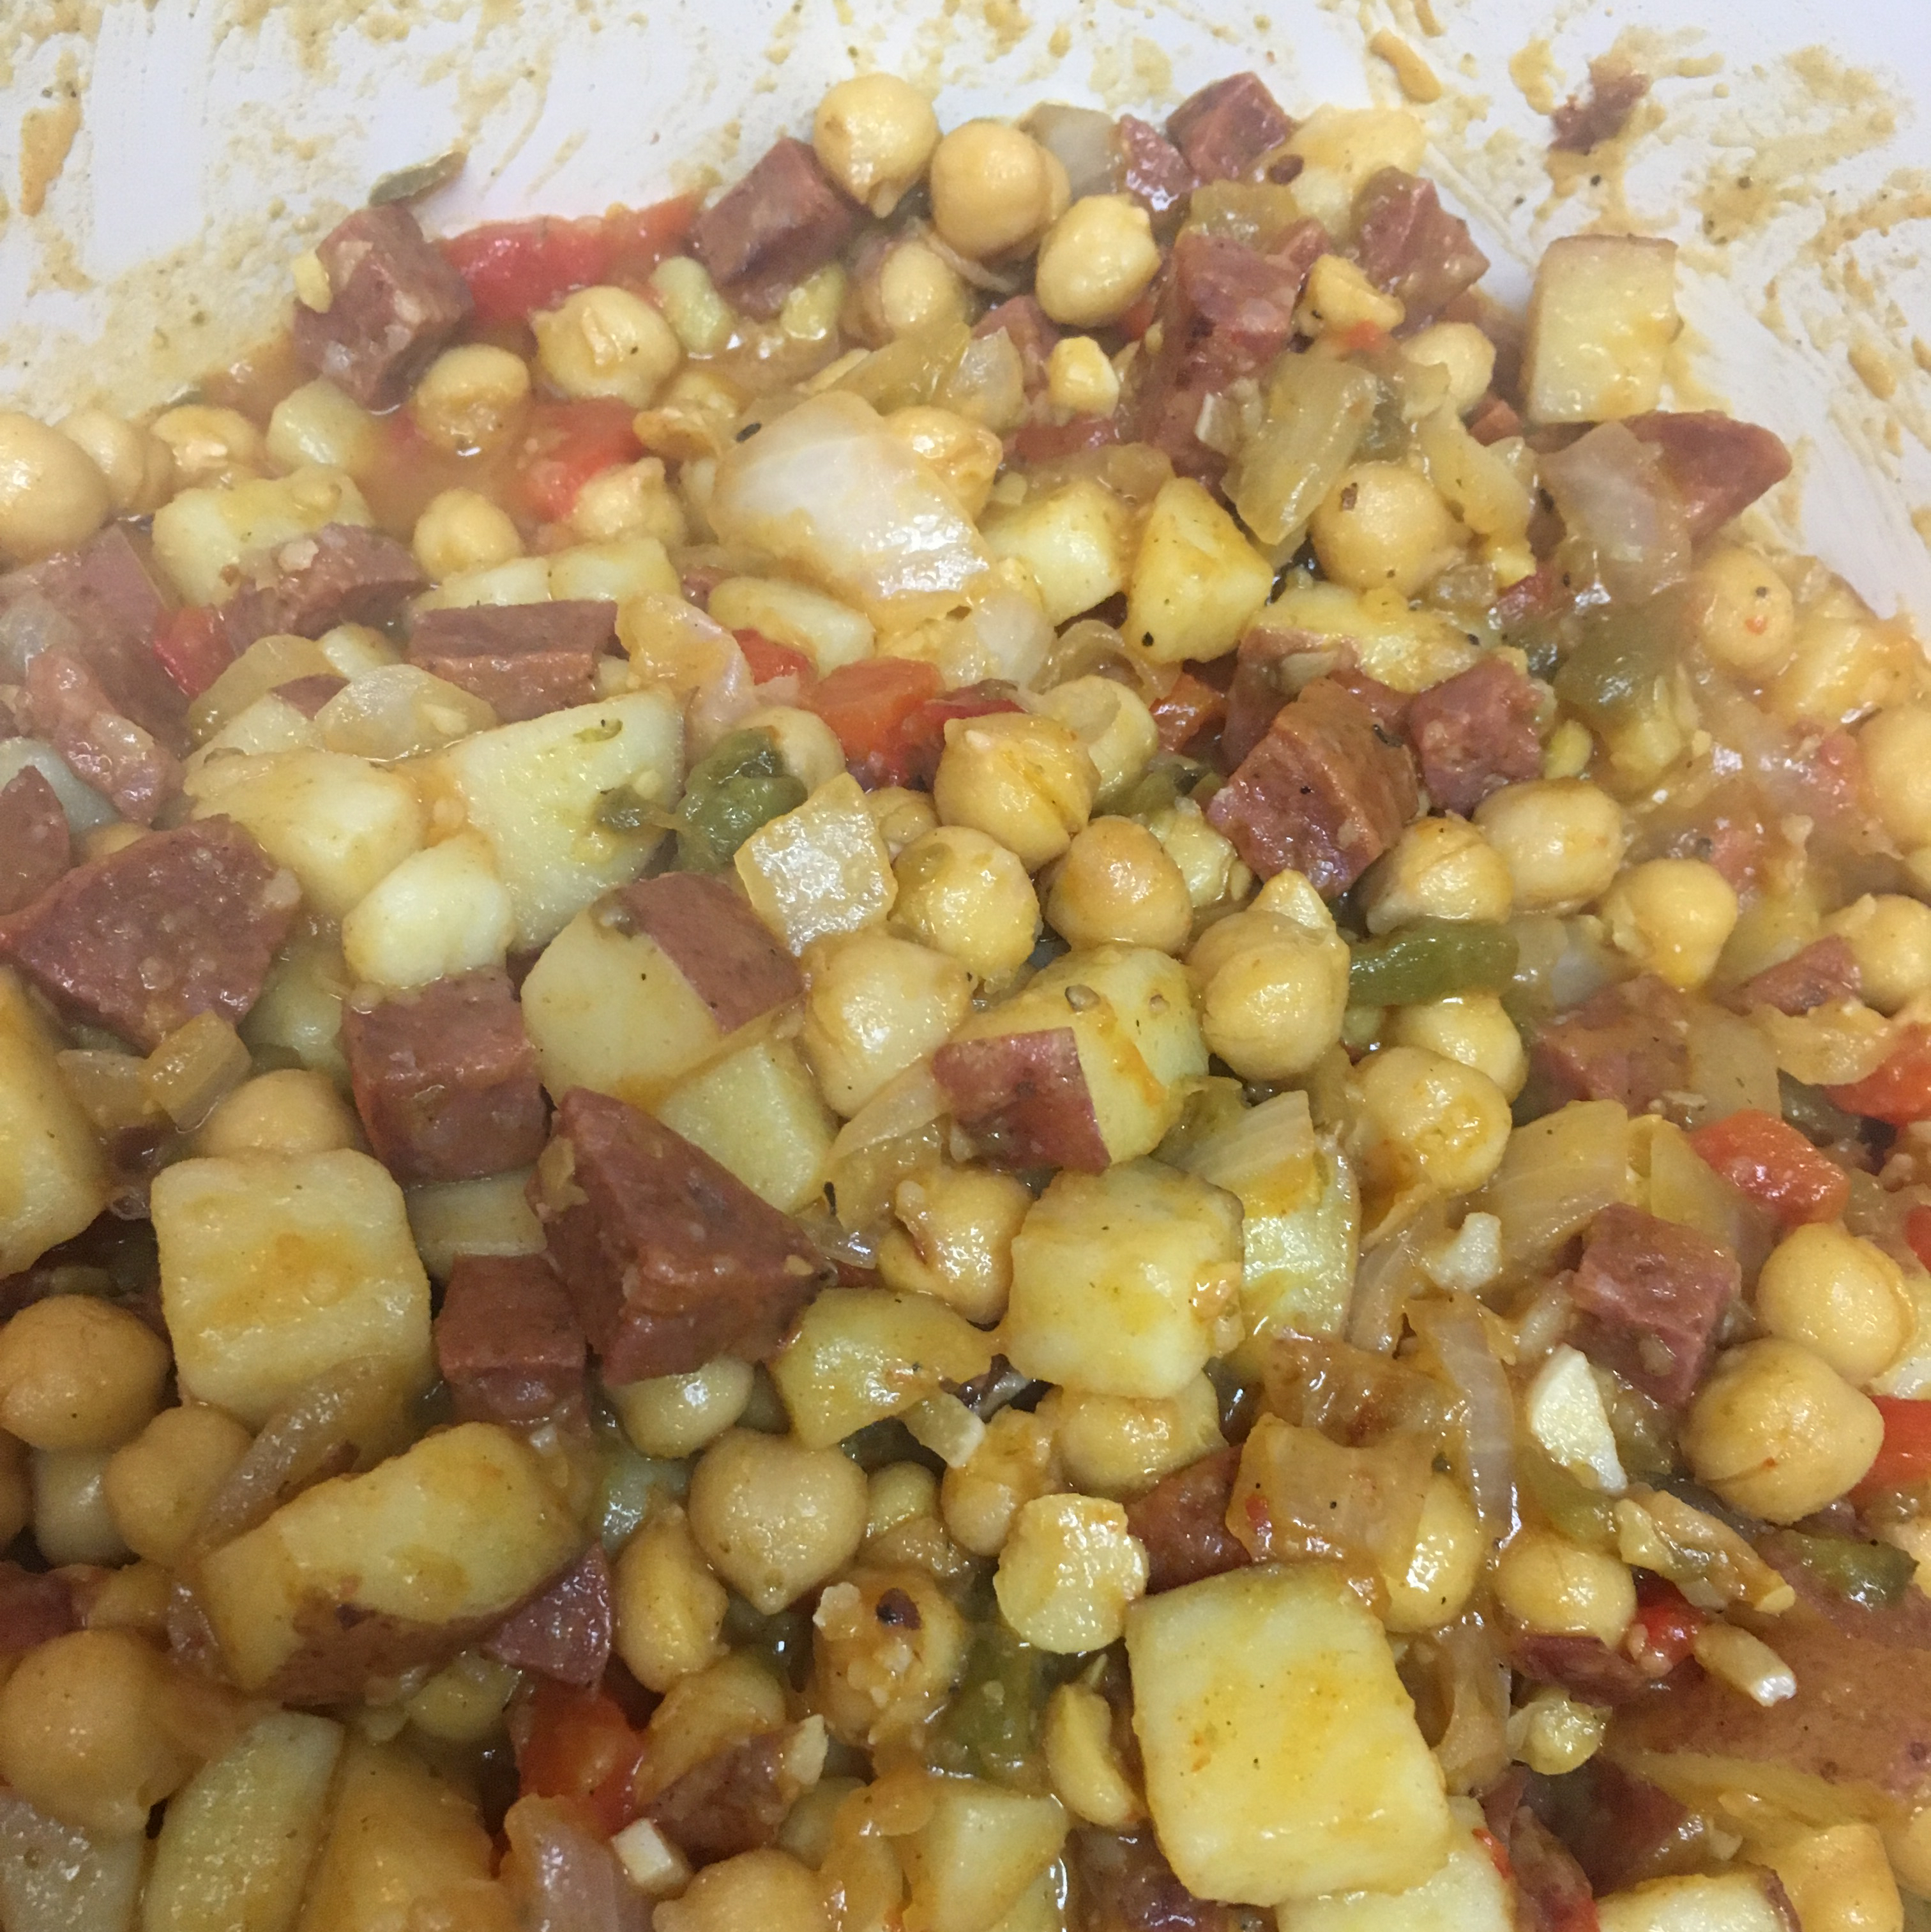 Chickpeas and Chorizo Ignacio Martin